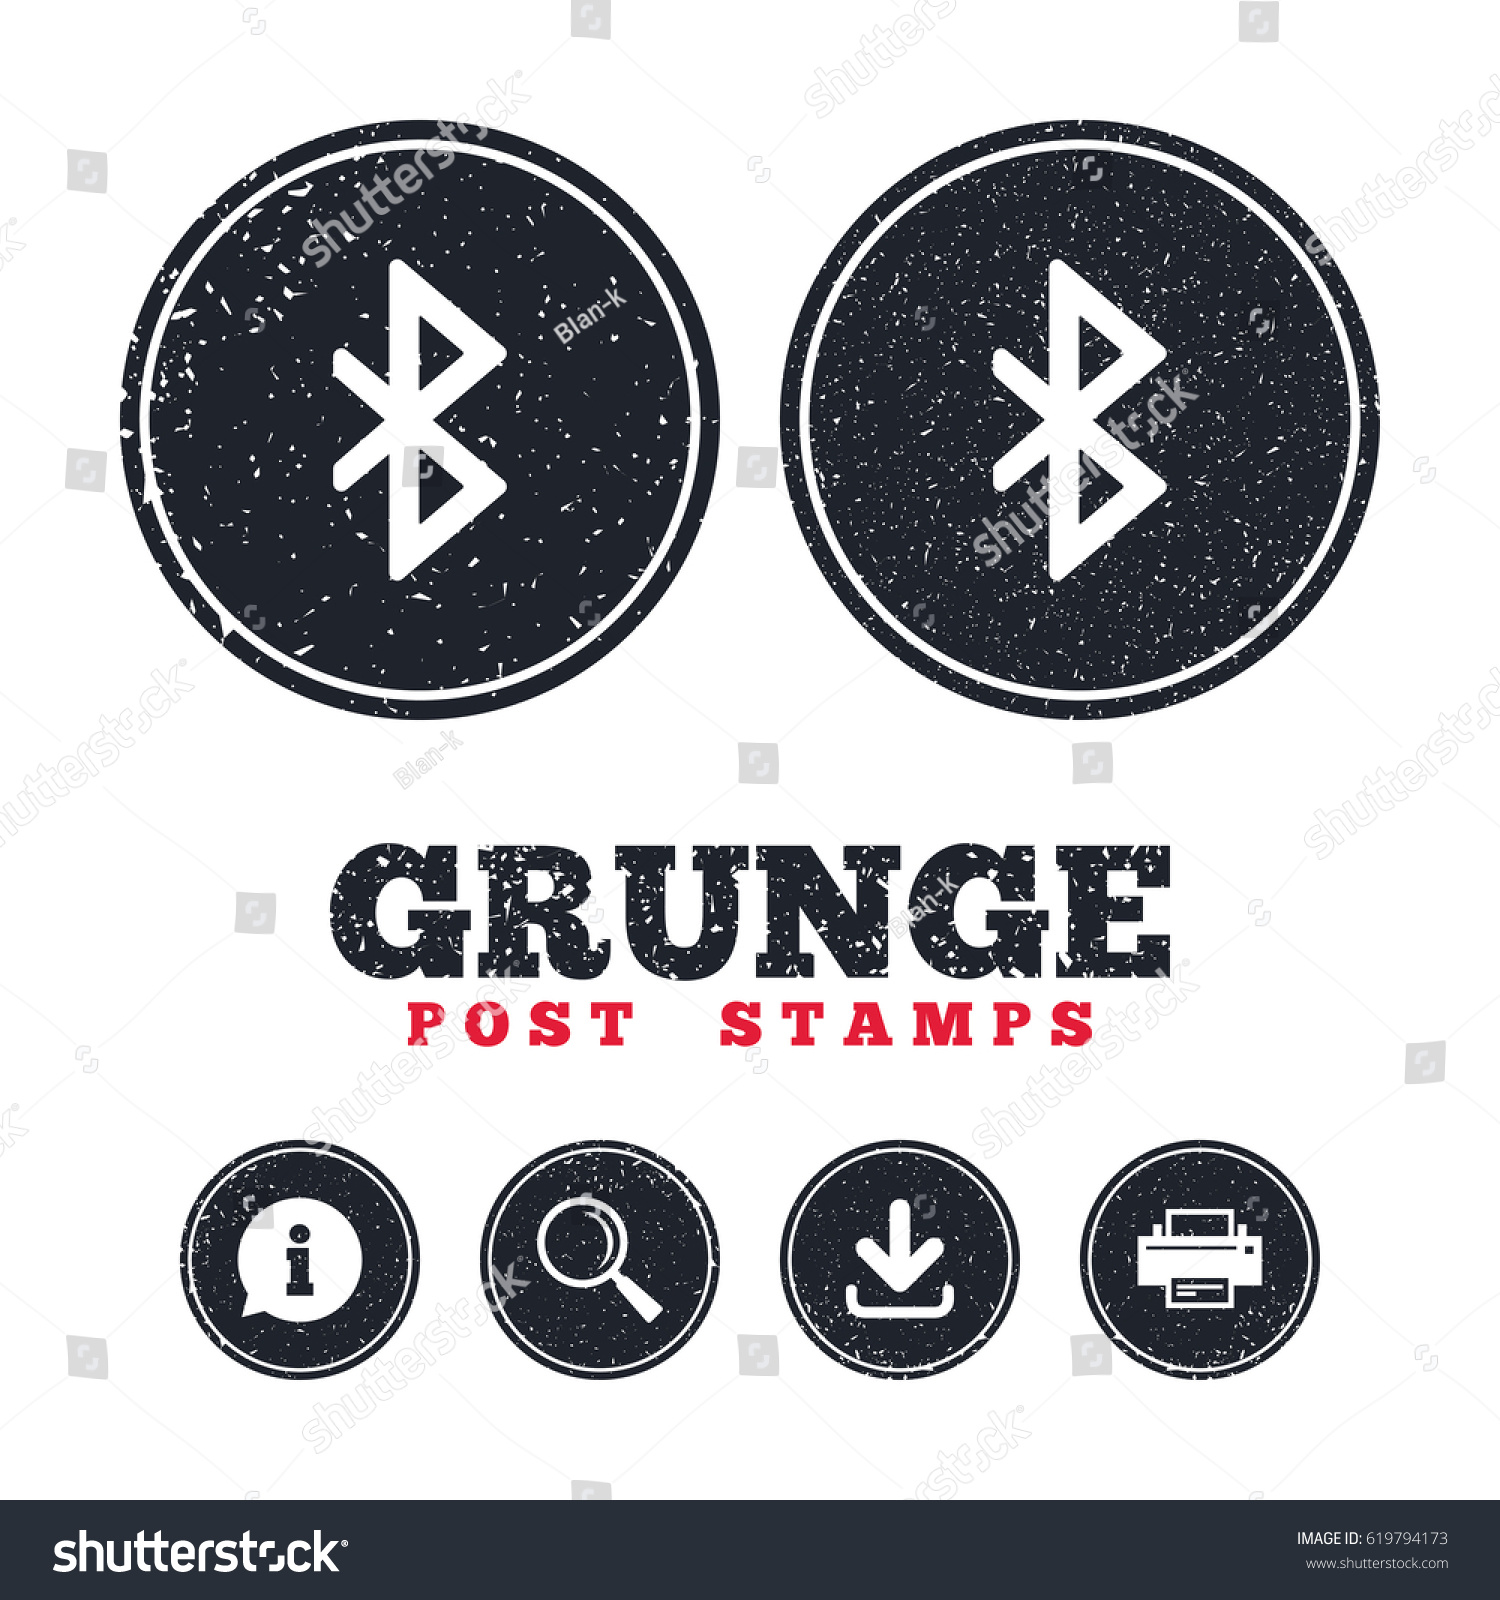 Grunge post stamps bluetooth sign icon stock vector 619794173 grunge post stamps bluetooth sign icon mobile network symbol data transfer information biocorpaavc